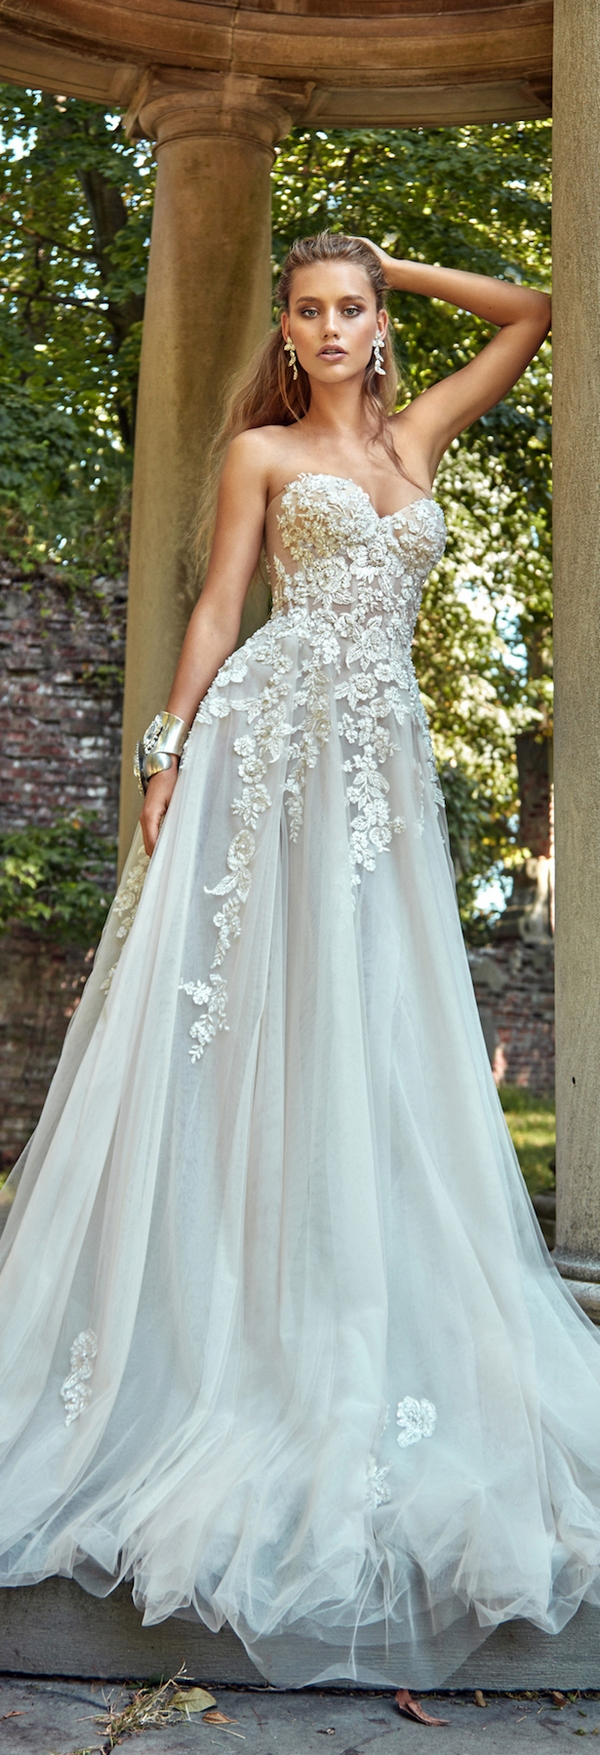 strapless floral lace applique wedidng dress with a flowy skirt